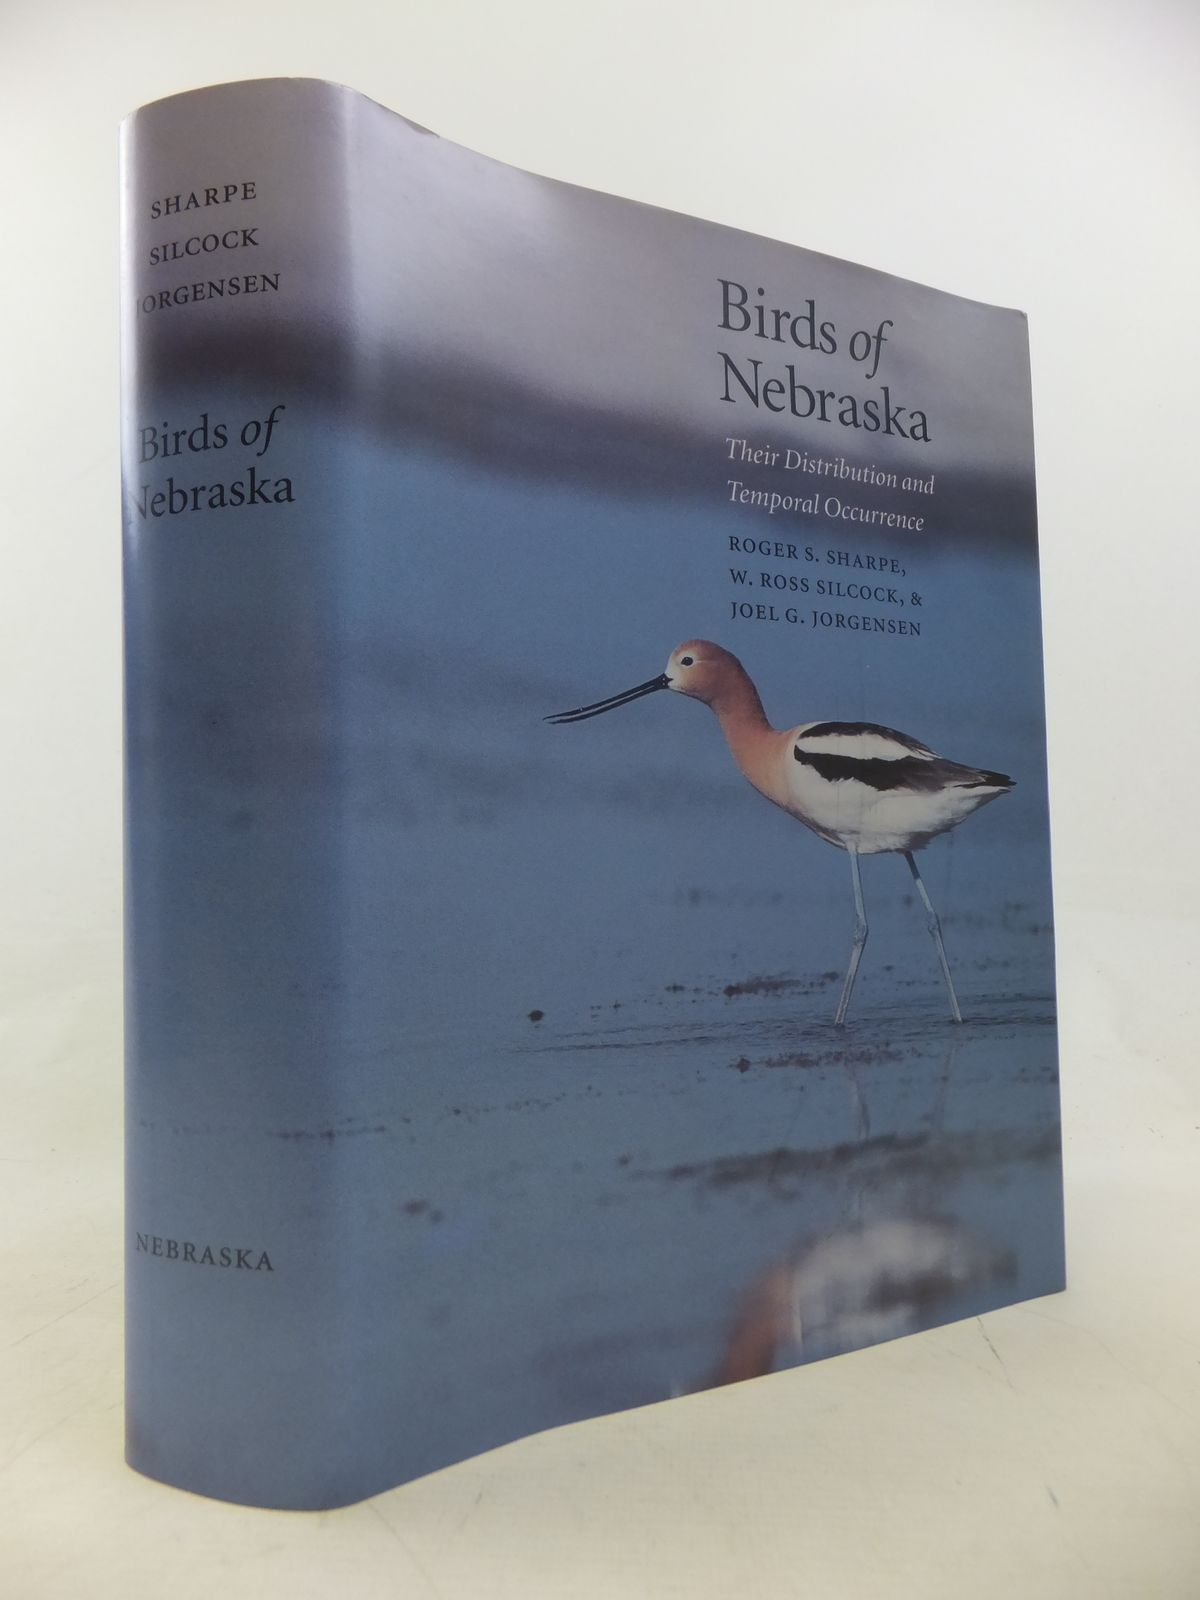 Photo of BIRDS OF NEBRASKA THEIR DISTRIBUTION &amp; TEMPORAL OCCURRENCE written by Sharpe, Roger S.<br />Silcock, W. Ross<br />Jorgensen, Joel G. published by Univeristy Of Nebraska Press (STOCK CODE: 1811150)  for sale by Stella & Rose's Books